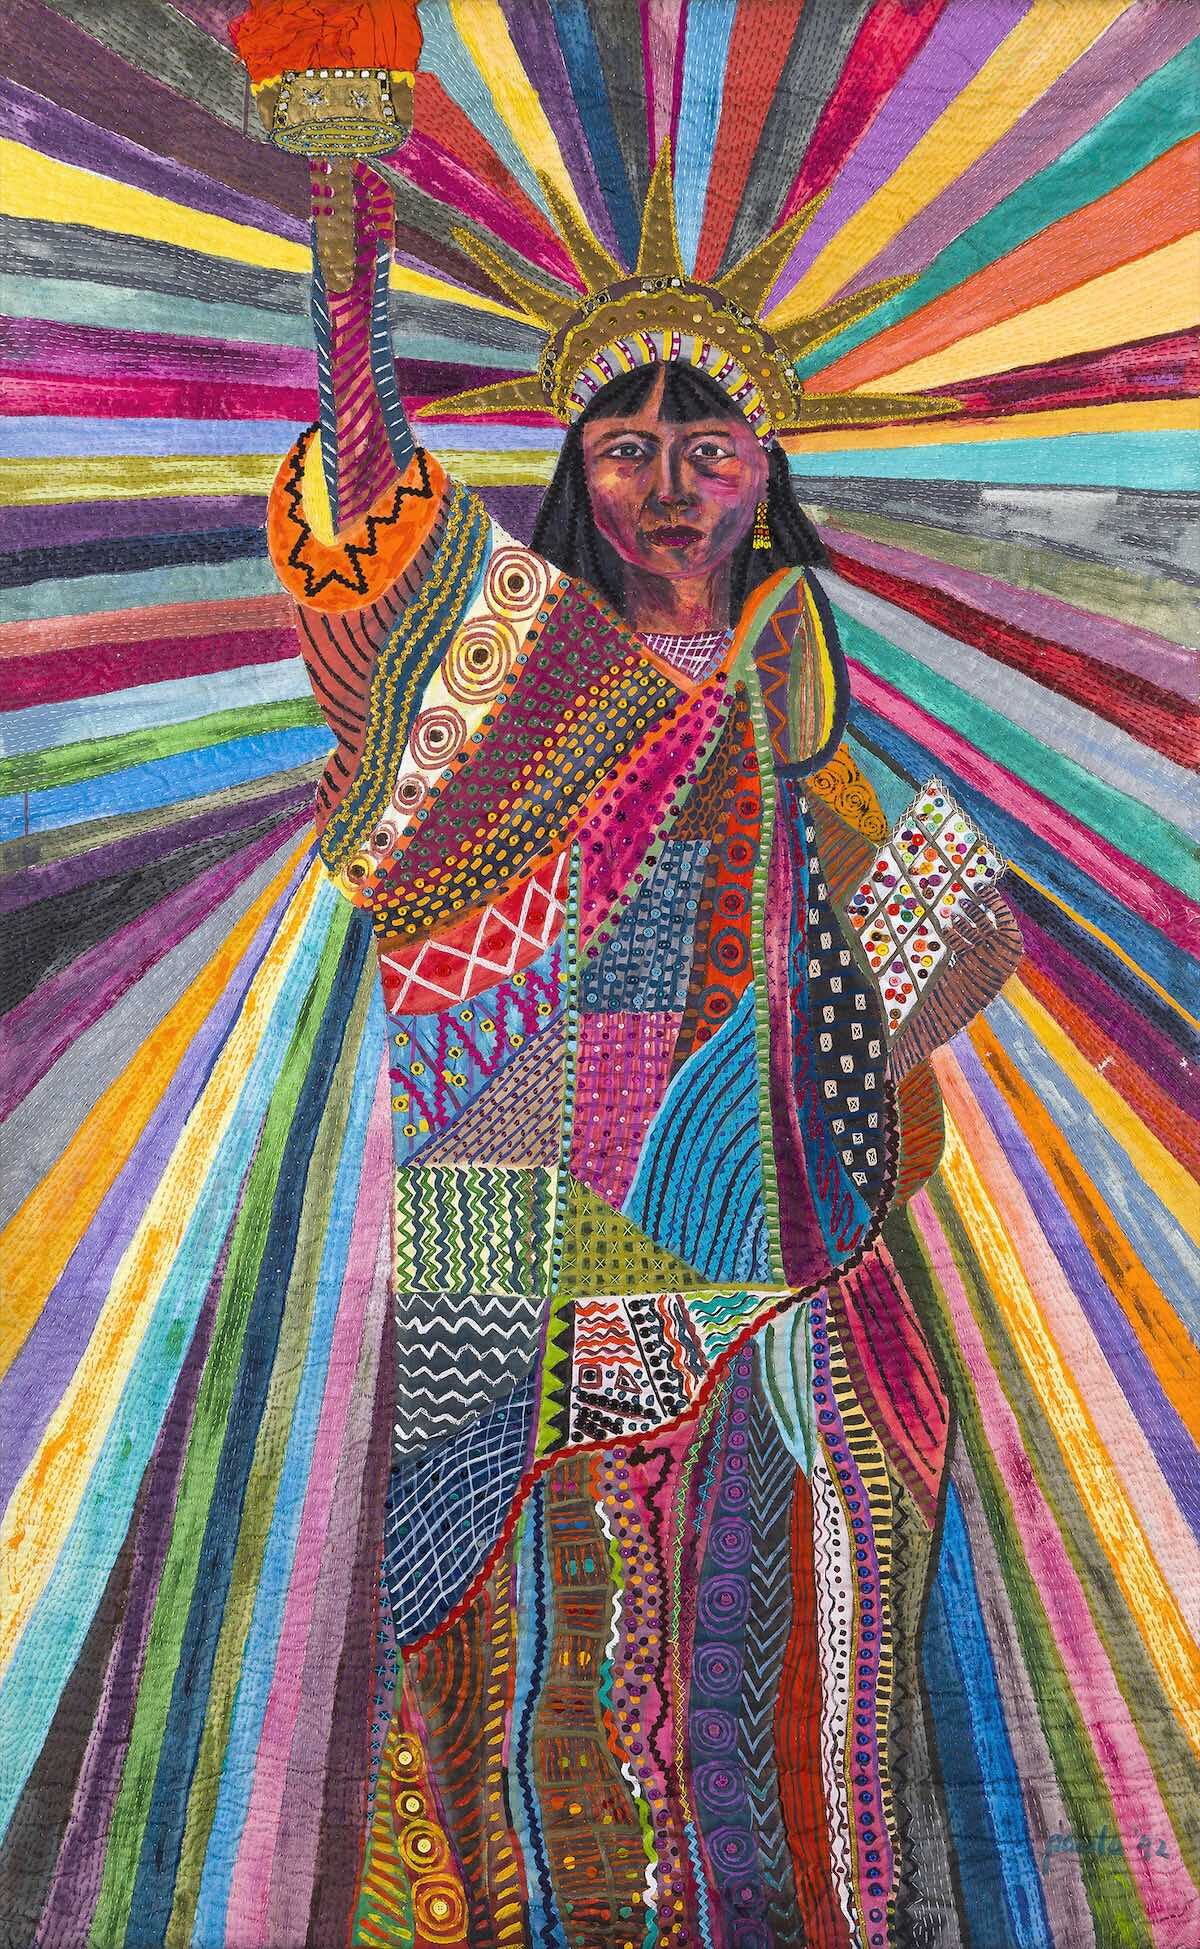 Pacita Abad, 'L.A. Liberty', 1992, acrylic, cotton yam, plastic buttons, mirrors, old thread, painted cloth on stitched and padded canvas. 239 x 147cm. Image courtesy of Estate of Pacita Abad.